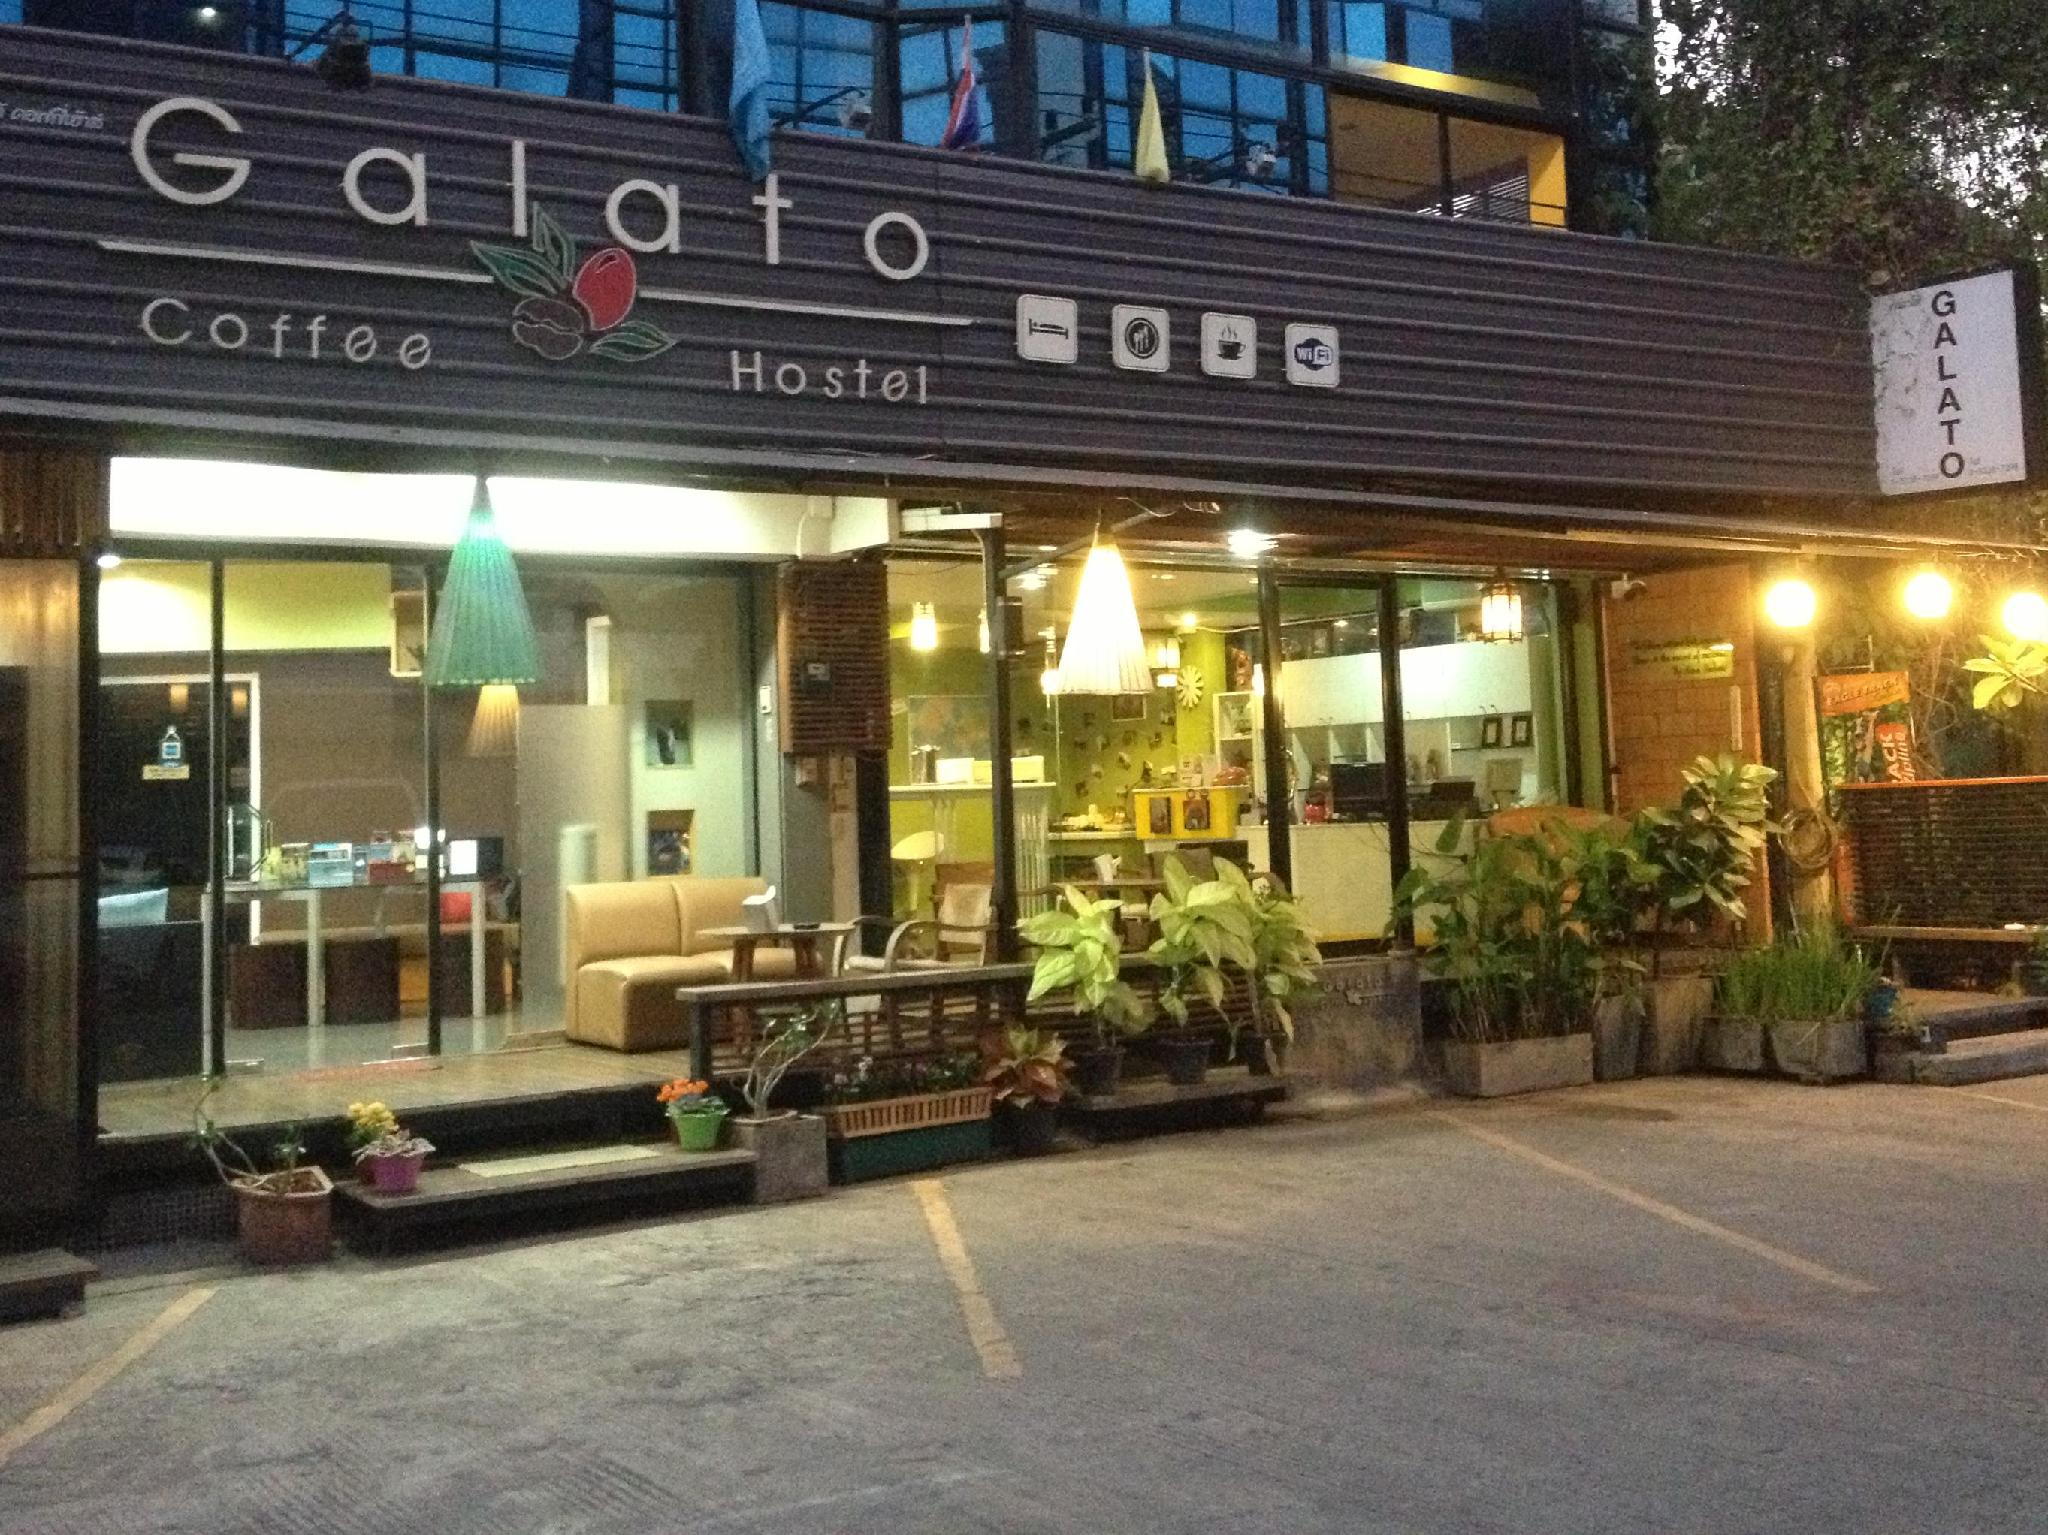 Galato Coffee Hostel